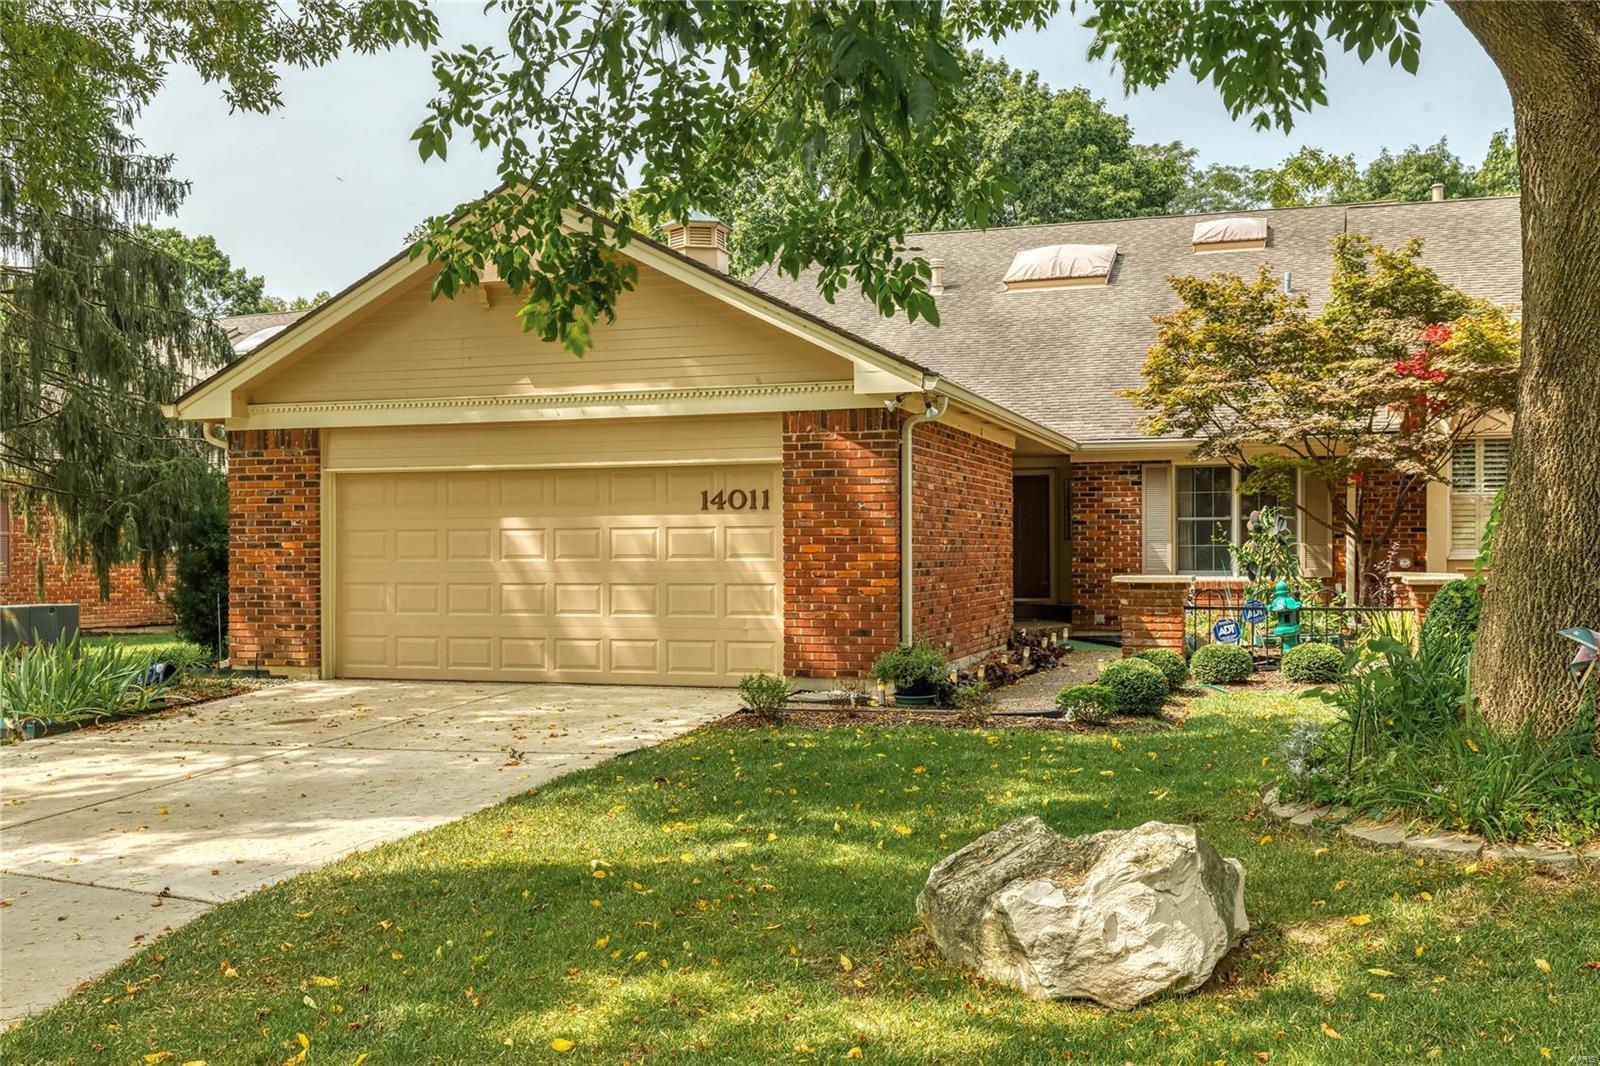 14011 Baywood Villages Drive Property Photo - Chesterfield, MO real estate listing